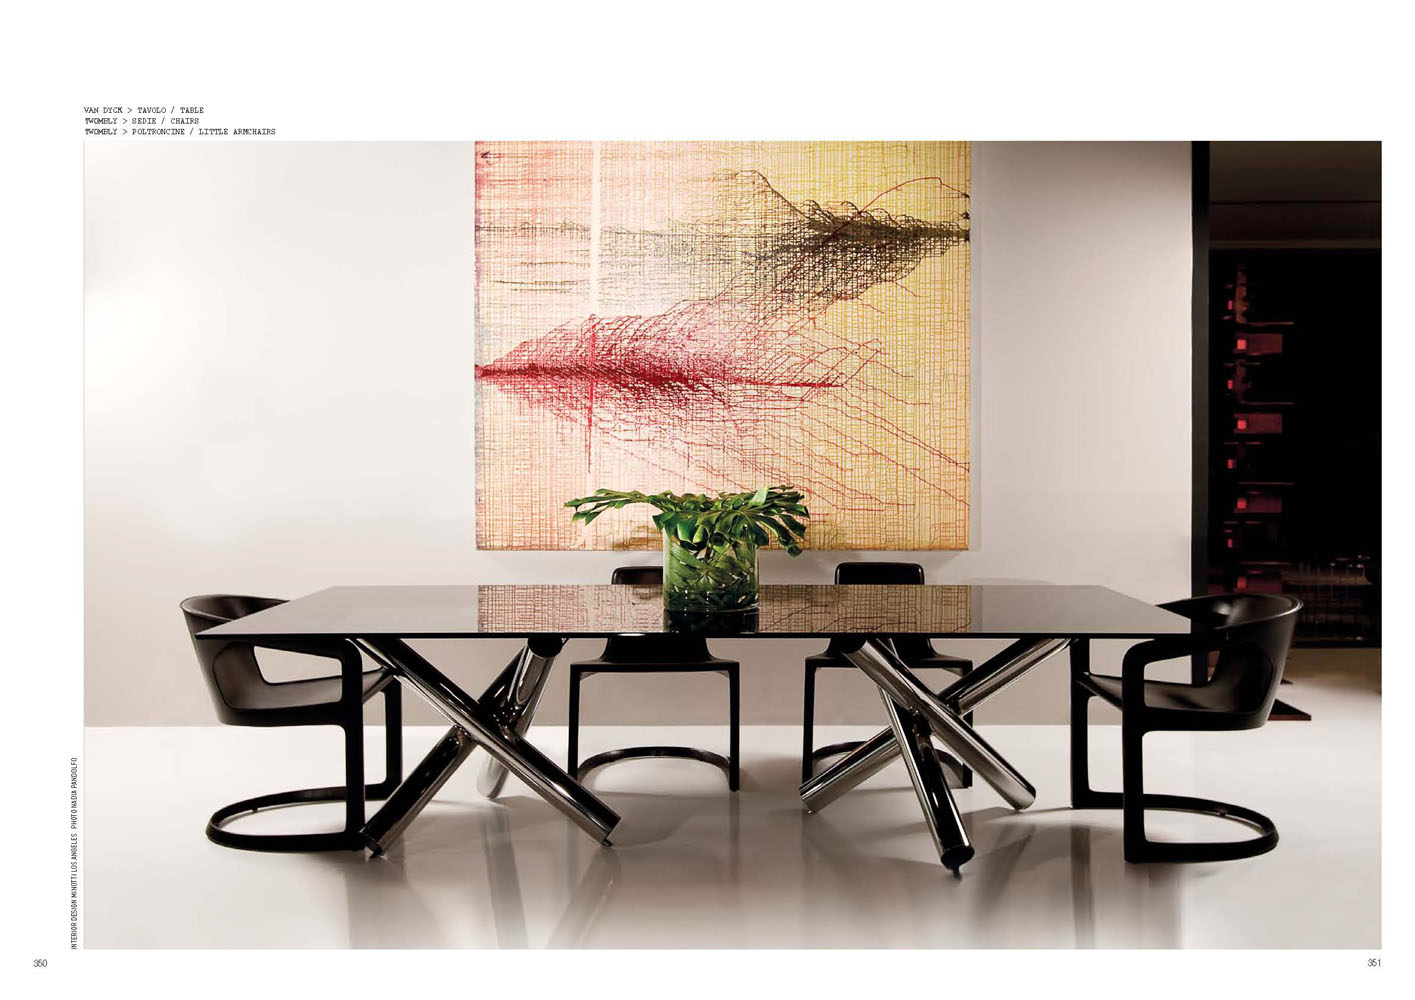 minotti world projects book (13)